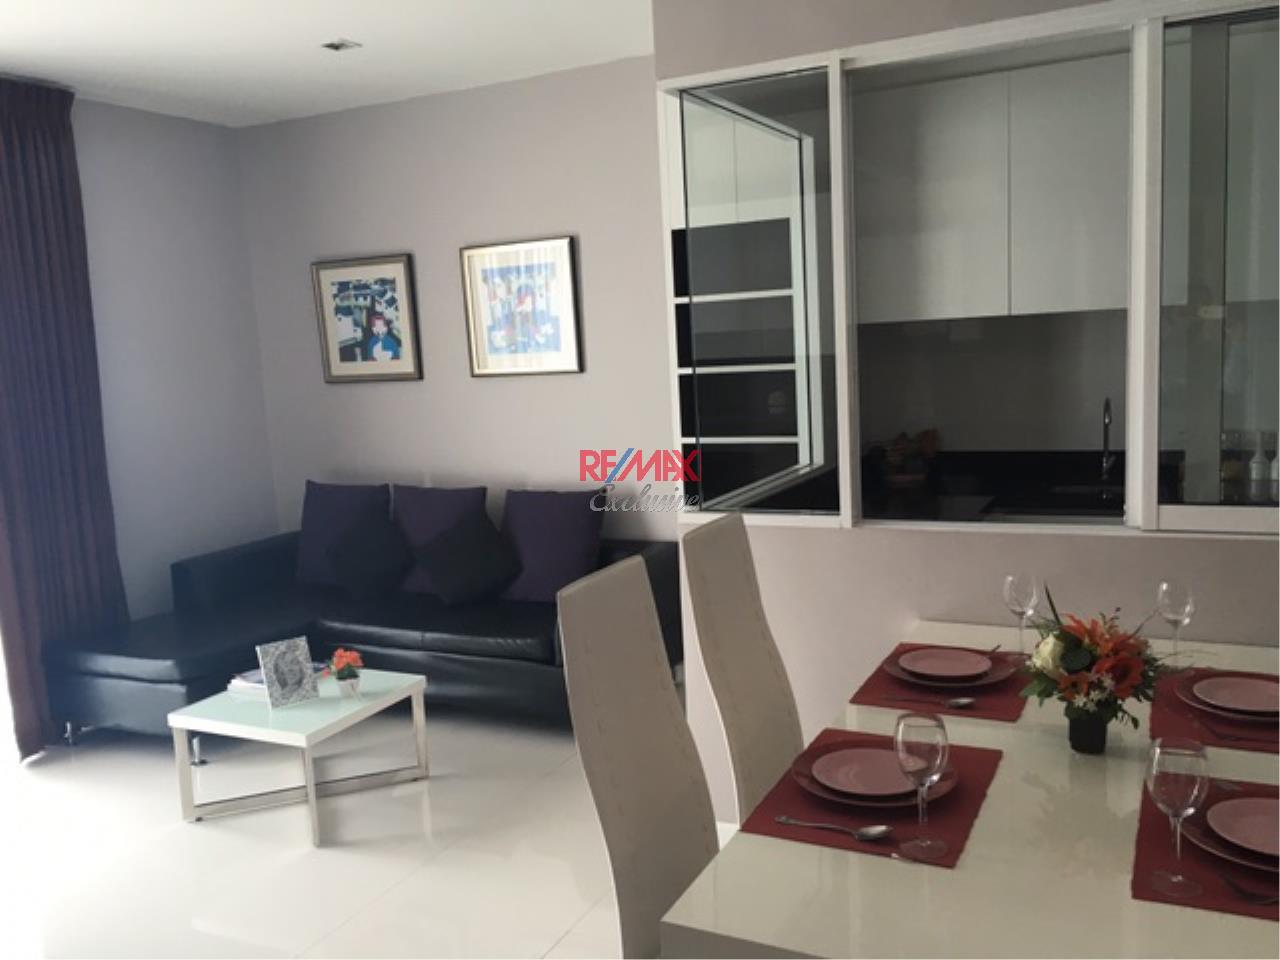 RE/MAX Exclusive Agency's The BLOOM, Sukhumvit 71.,2 Bedroom, 71 Sqm., Fully-Furnished, EXCLUSIVE UNIT for RENT !! 9